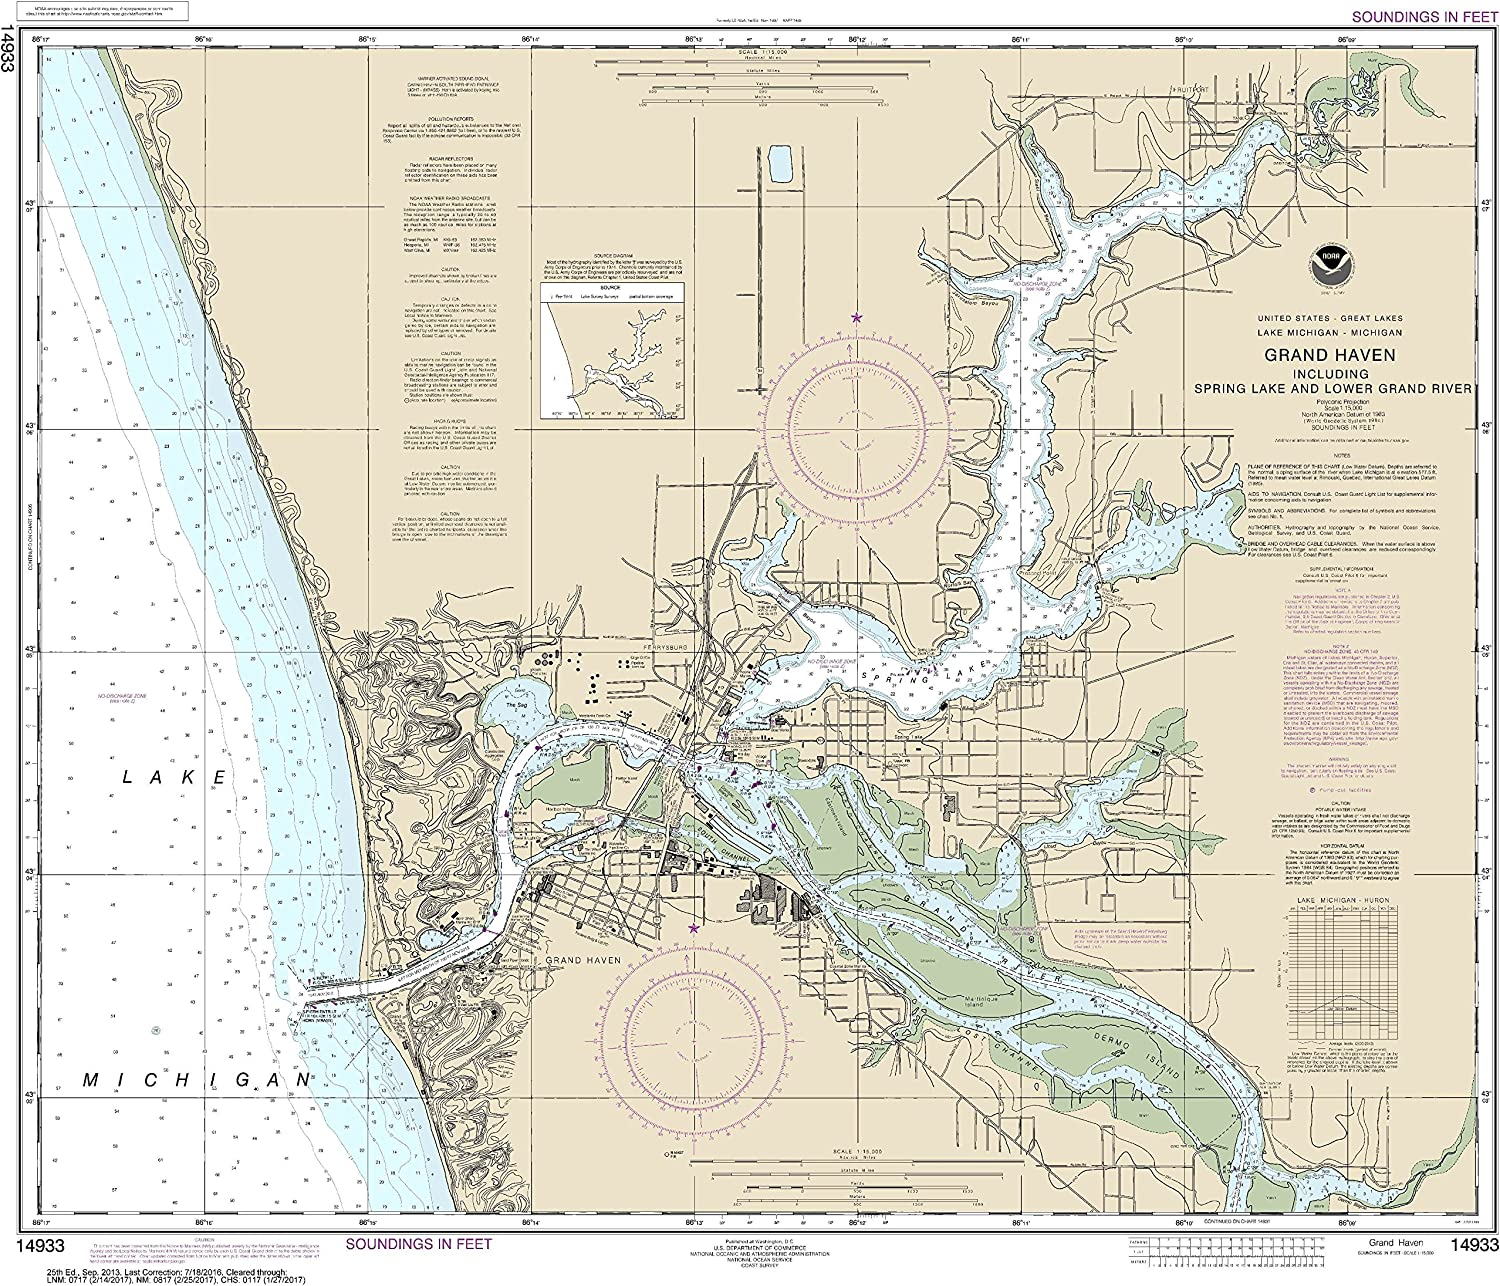 NOAA Chart 14933 Grand Haven, Including Spring Lake and Lower Grand River  28.33  X 32.79  Laminated Map